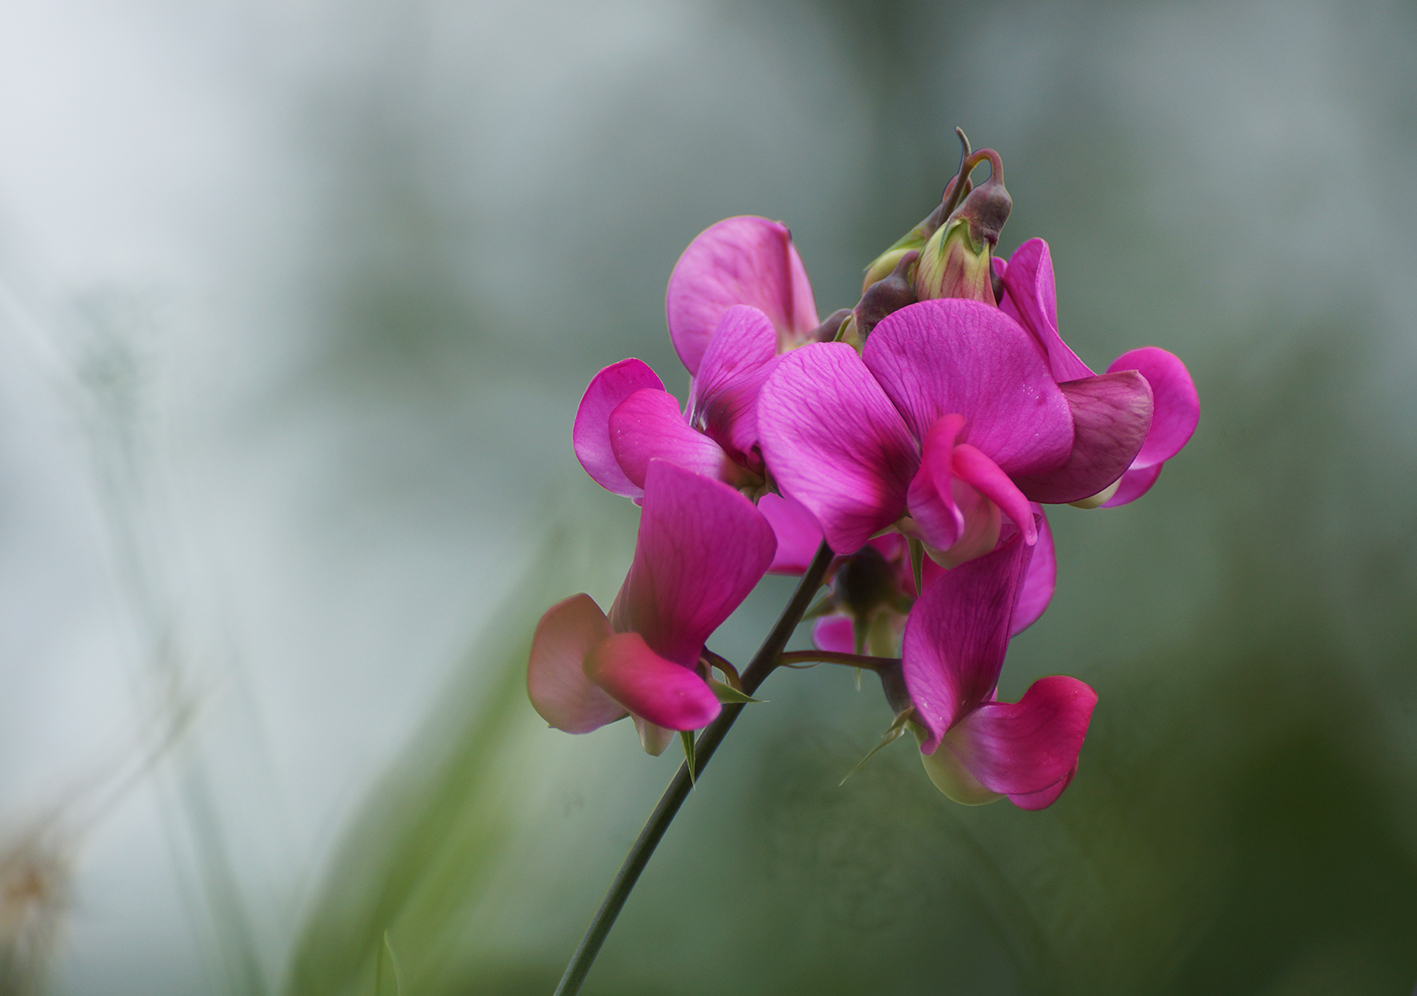 sweet pea flower photo